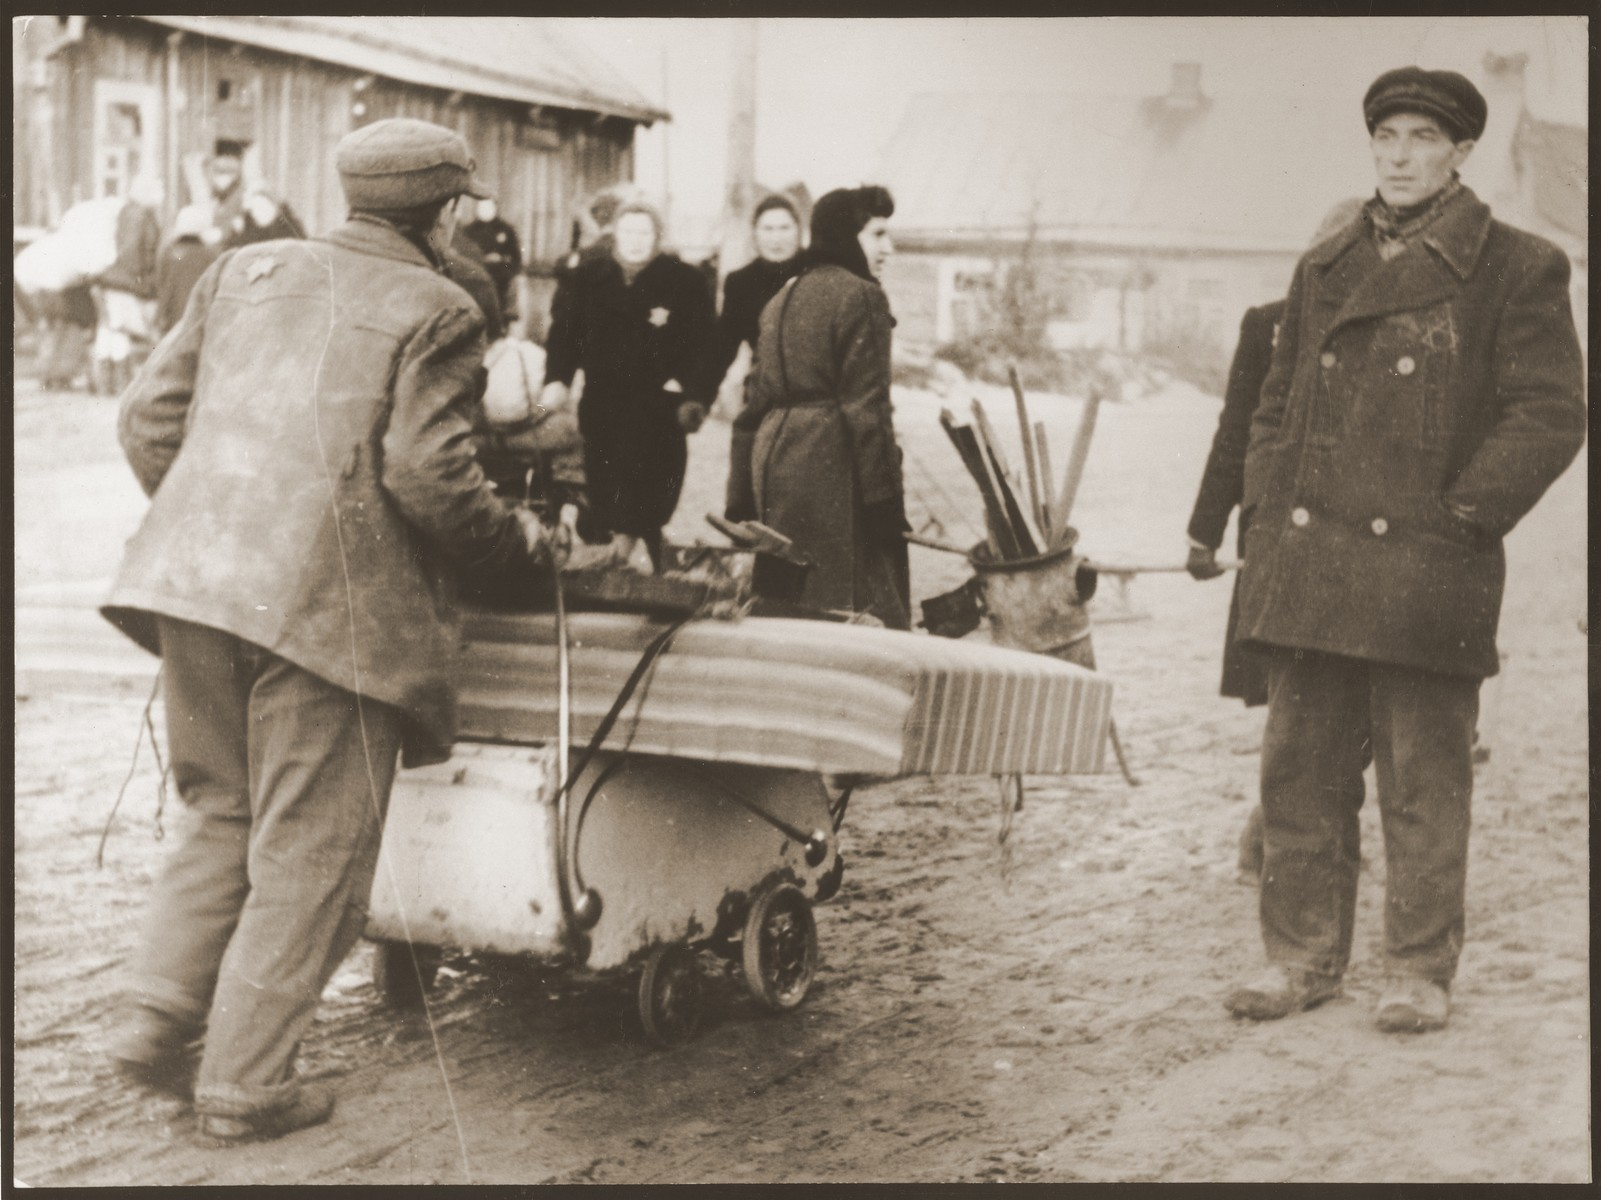 Residents of the ghetto move to new housing after the Germans reduced the borders of the Kovno ghetto.  Since there were no vehicles, these residents are using a baby carriage to transport their belongings.